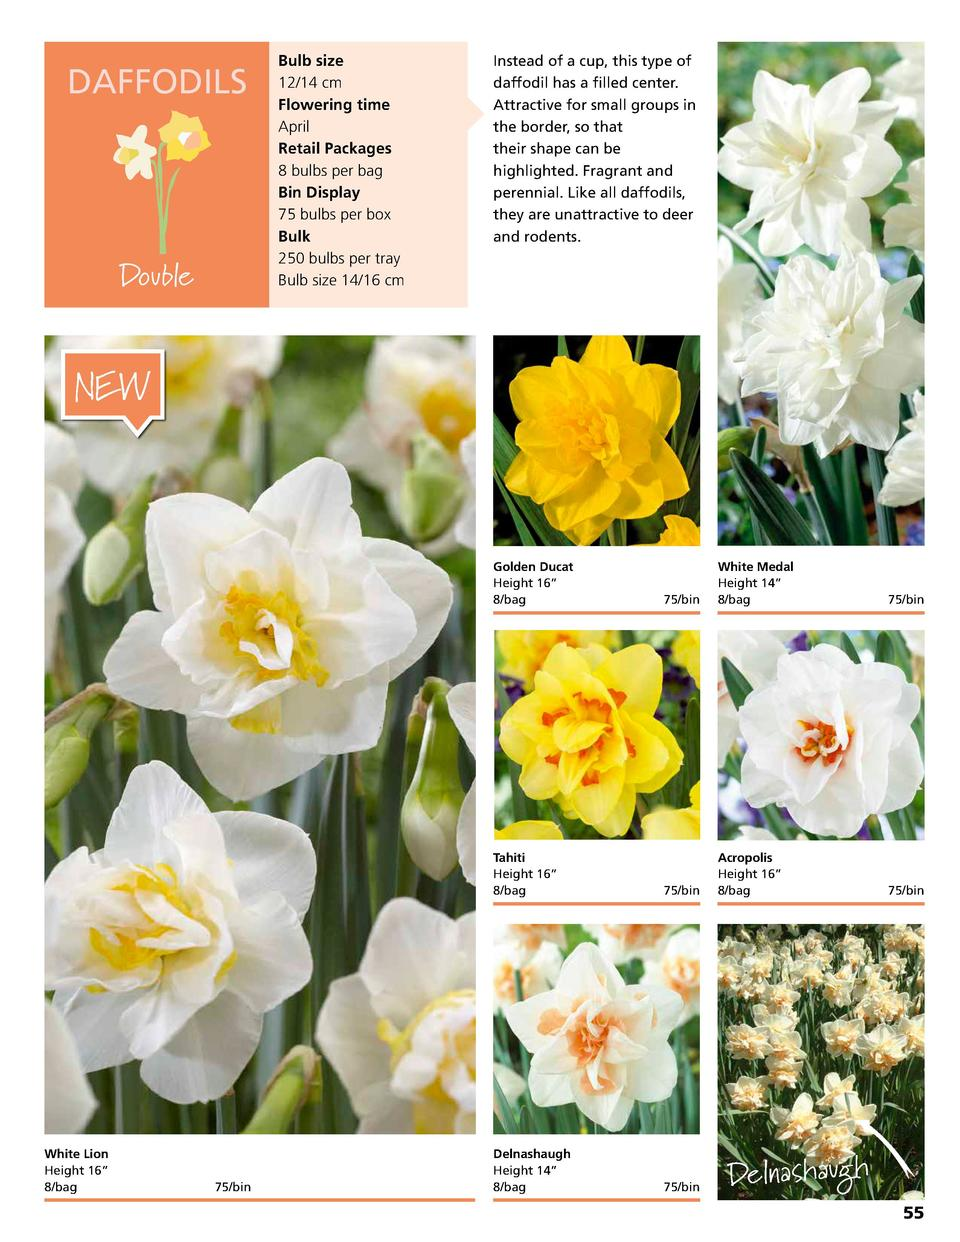 DAFFODILS  Double  Bulb size 12 14 cm Flowering time April Retail Packages 8 bulbs per bag Bin Display 75 bulbs per box Bu...